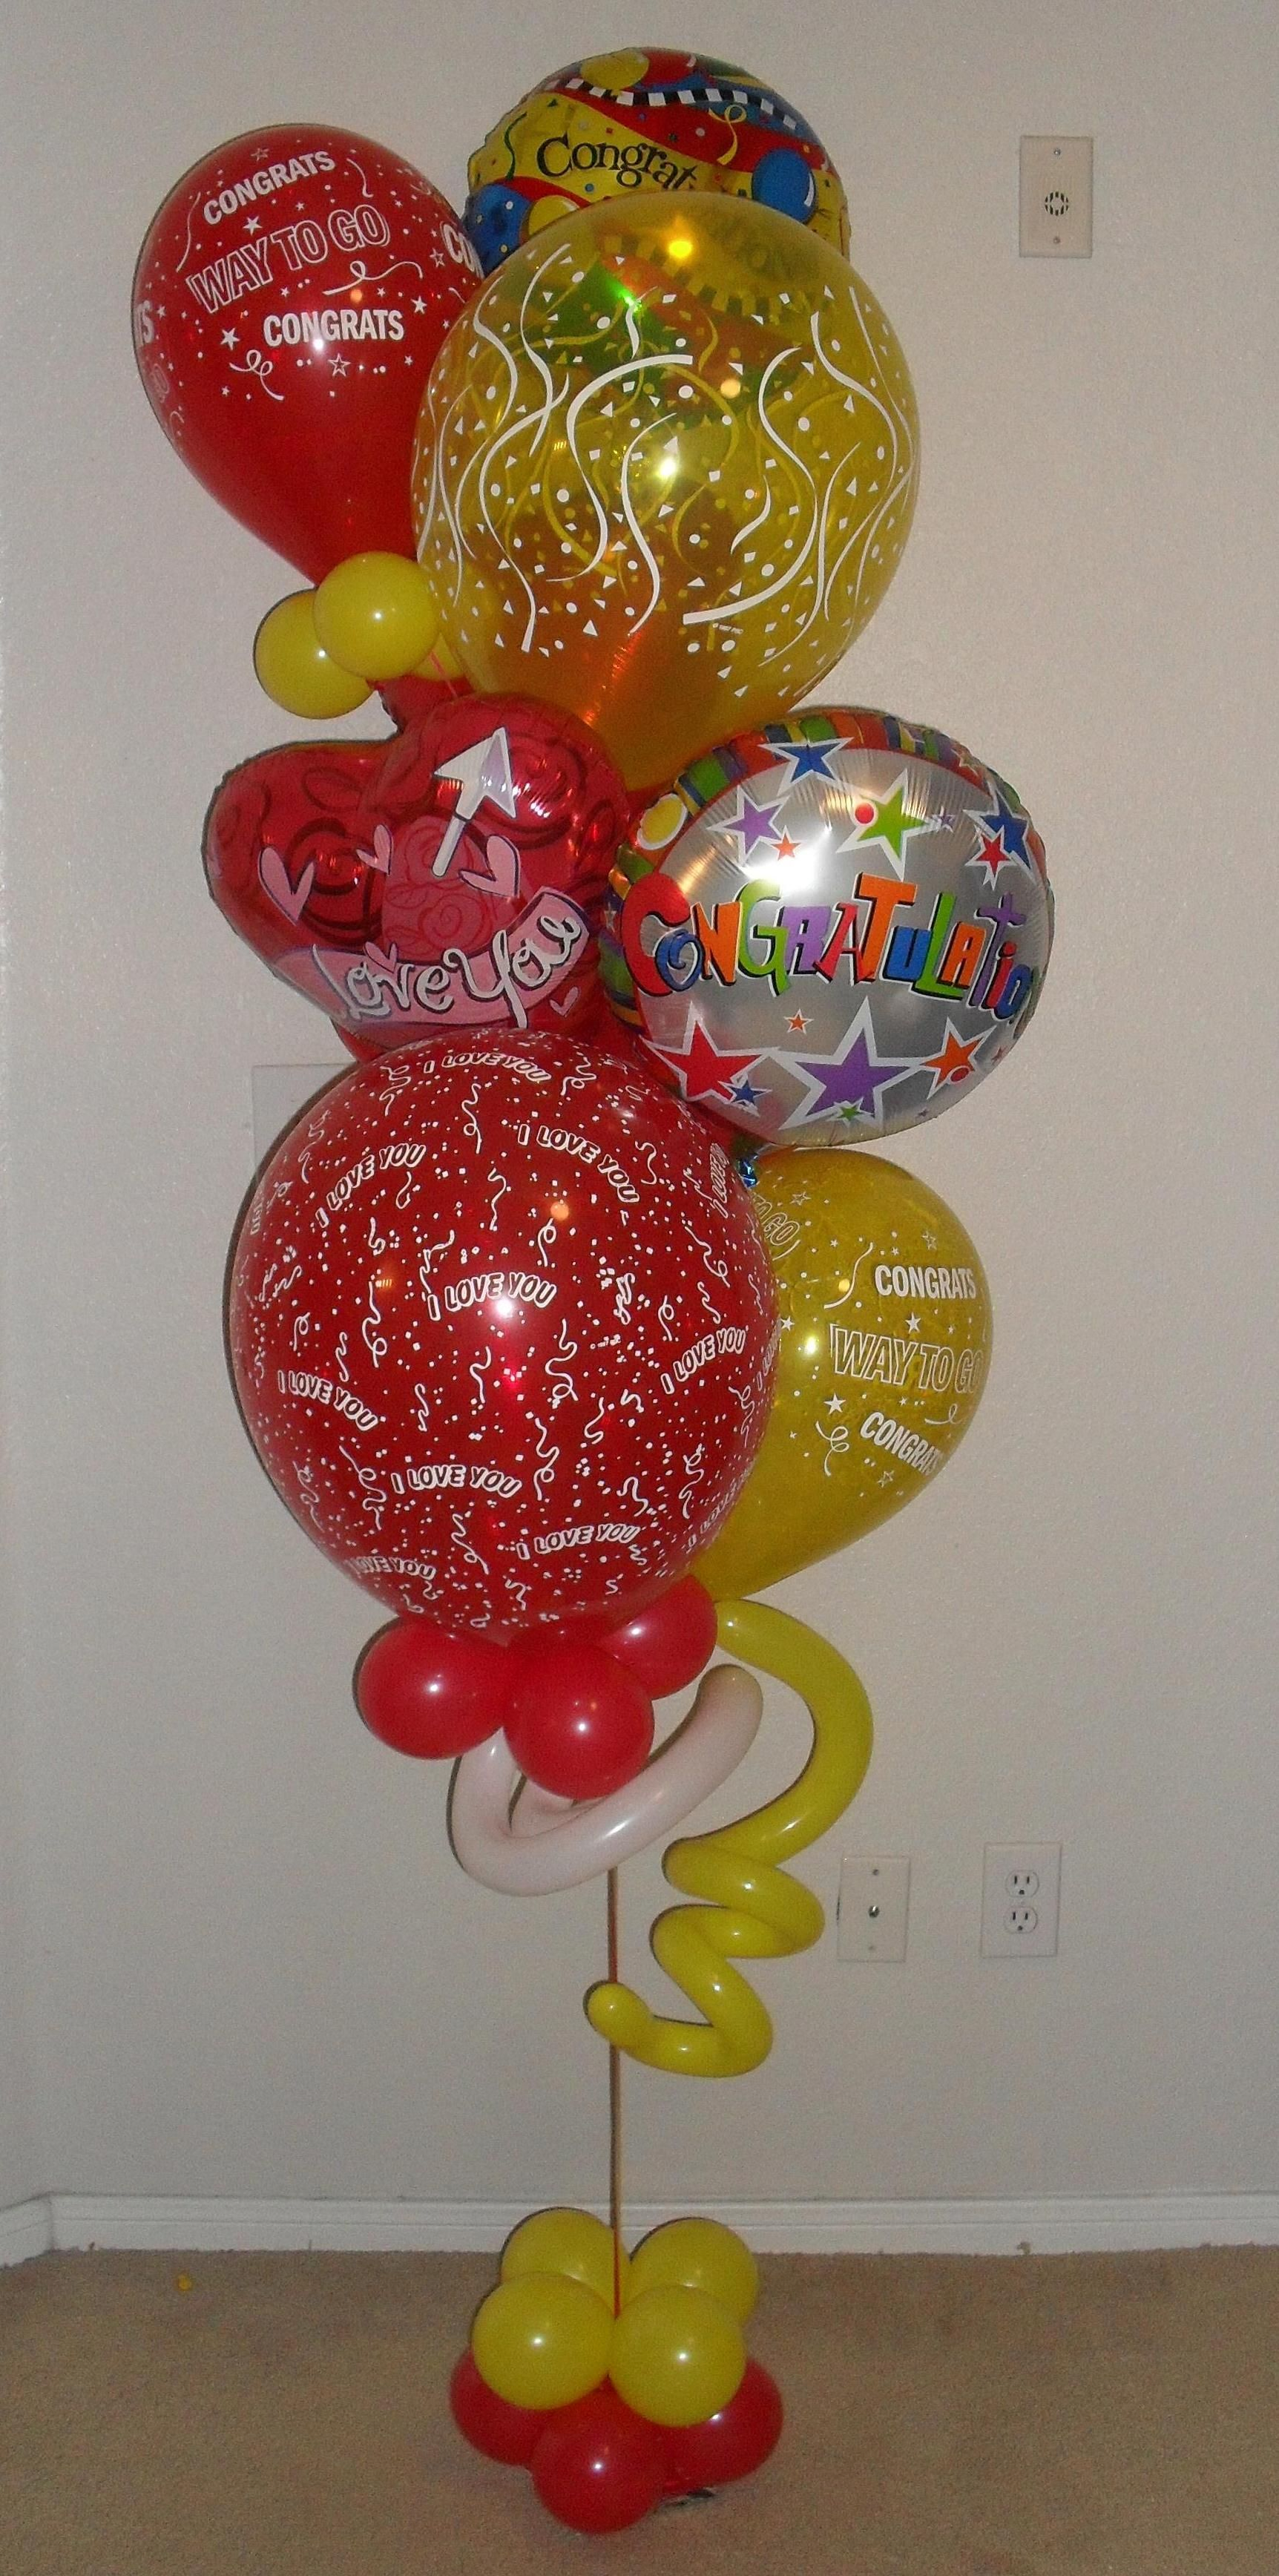 Congratulations I love you small balloon bouquet delivery arrangement $80 created by balloonsandmoregifts.com